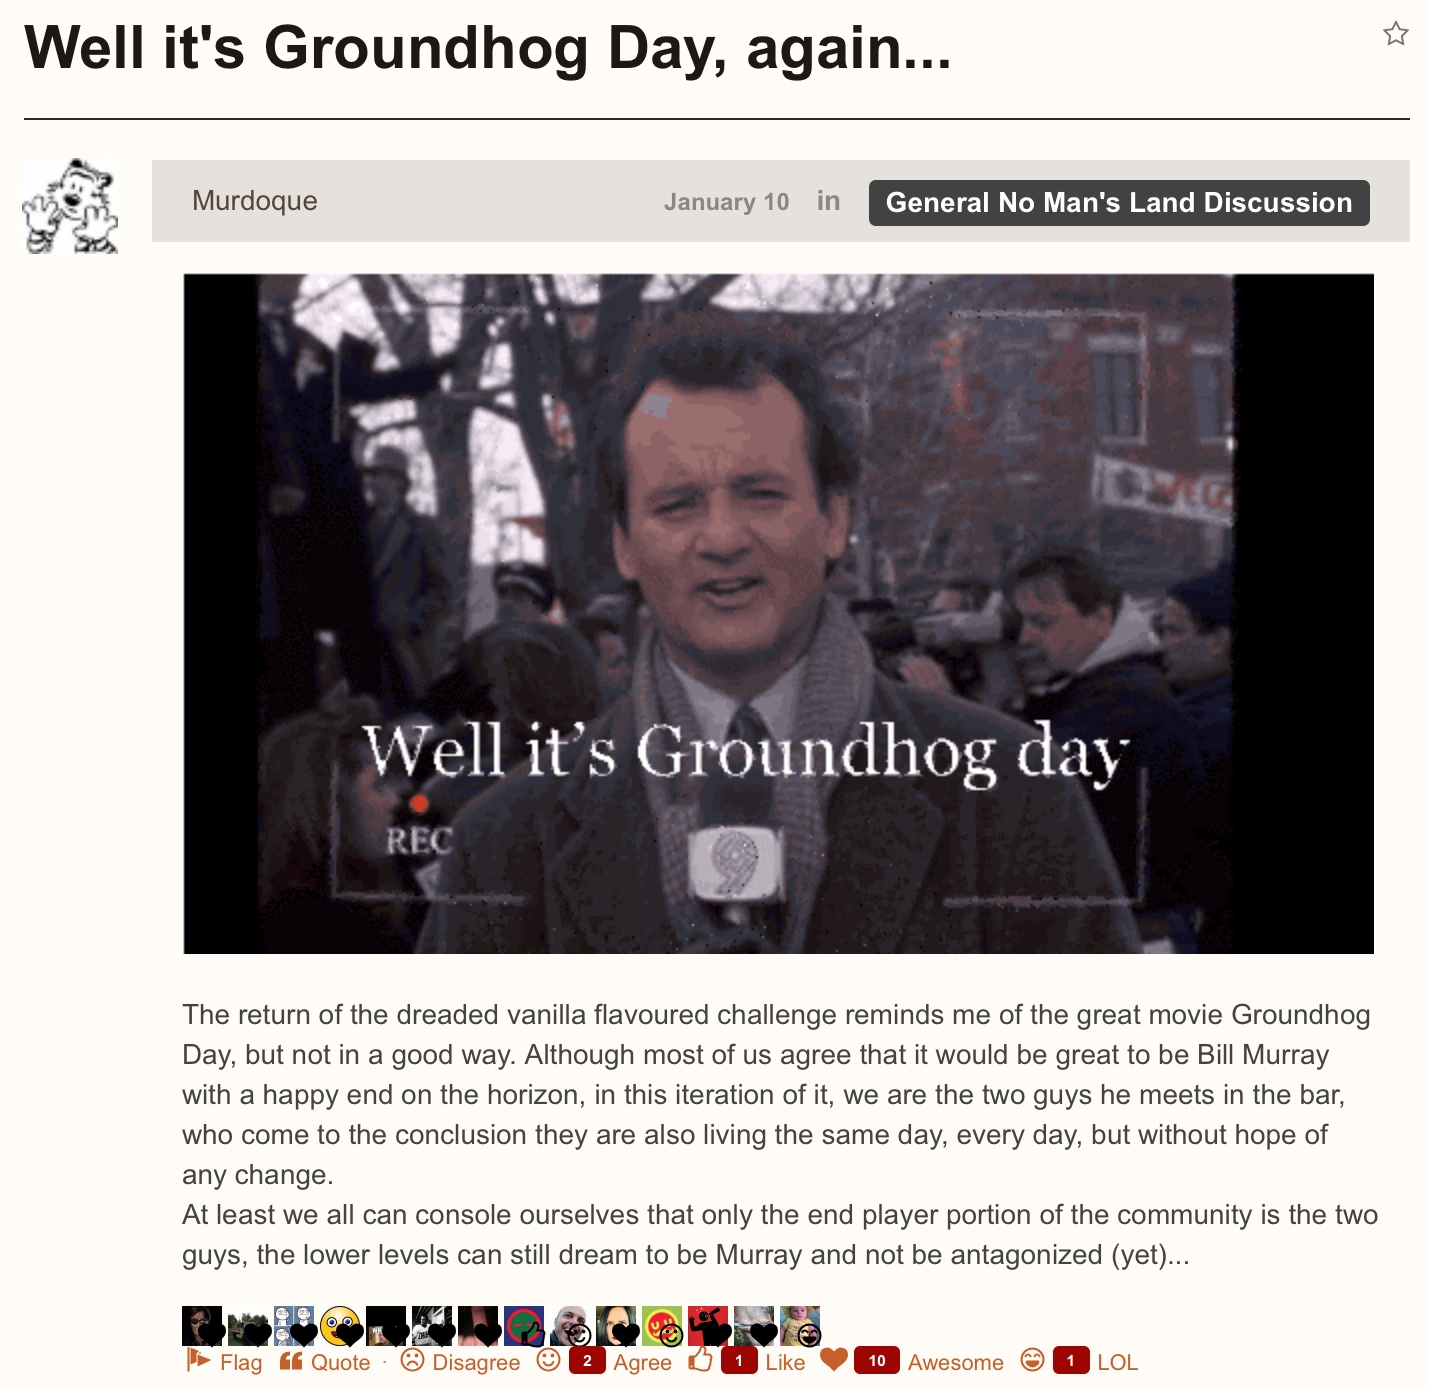 Groundhog Day Movie Quotes Well It's Groundhog Day Again Nextgames